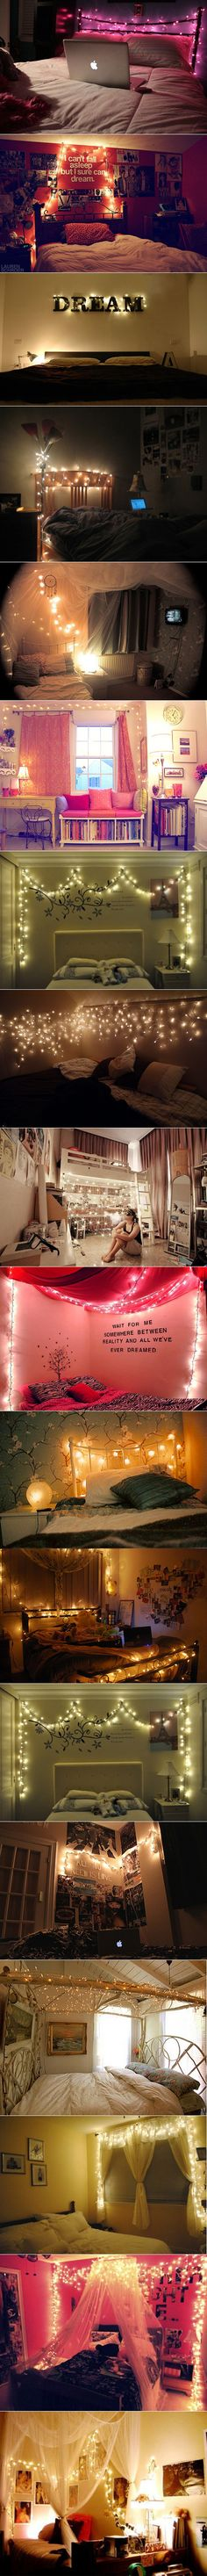 I love these! My favorite is 'dream' above the bed with lights. I might try it...